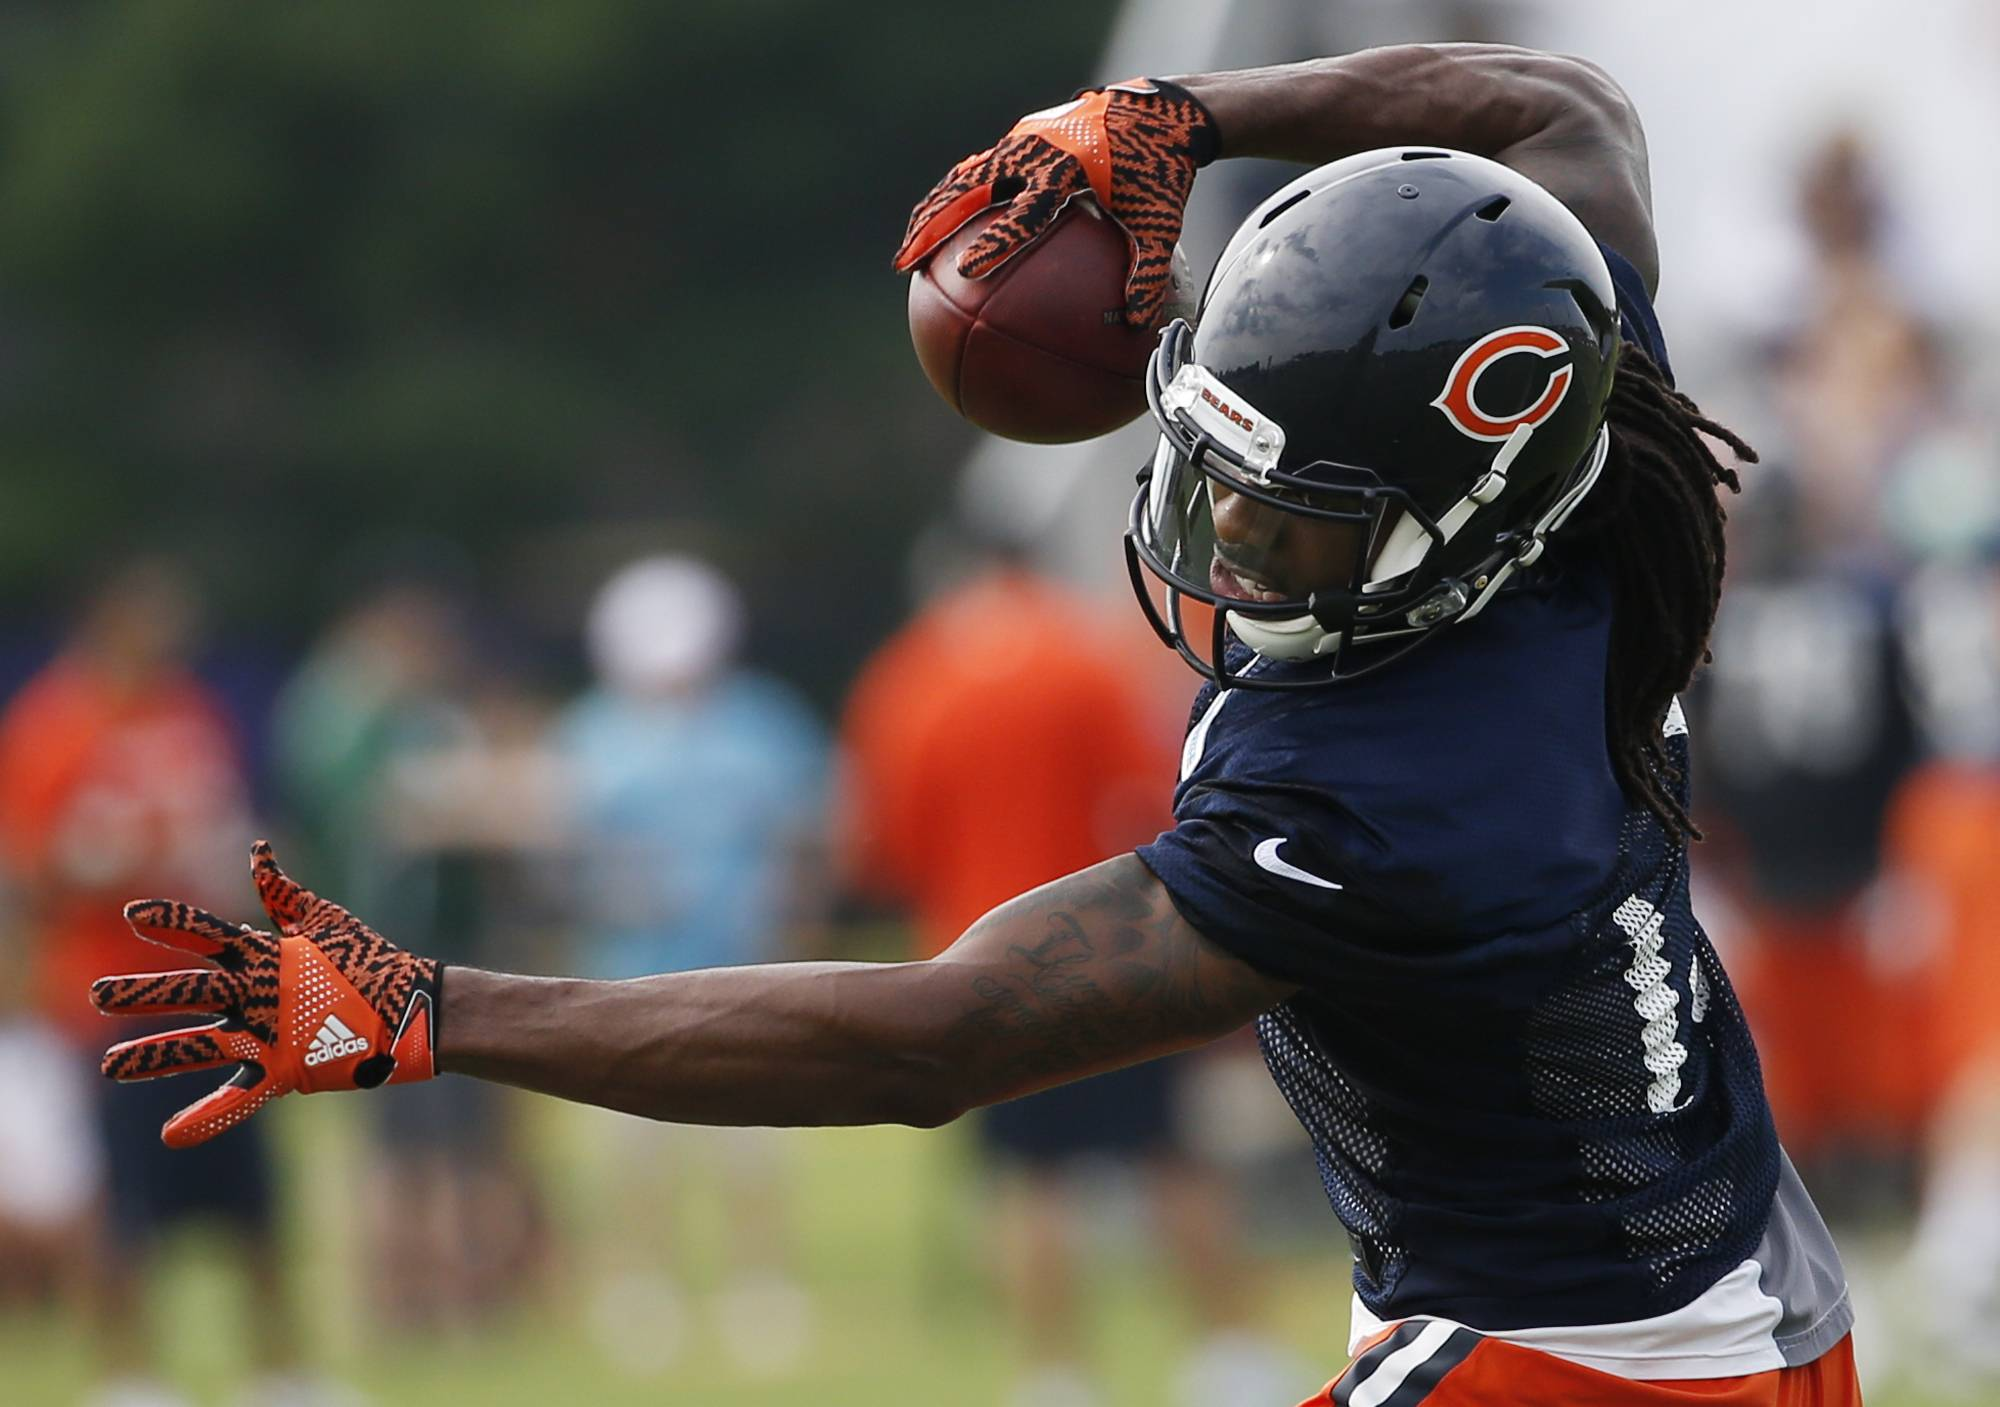 Chicago Bears wide receiver Kevin White catches a ball during practice at the NFL football teams training camp at Olivet Nazarene University, in Bourbonnais, Ill., Thursday, July 28, 2016. (AP Photo/Nam Y. Huh)